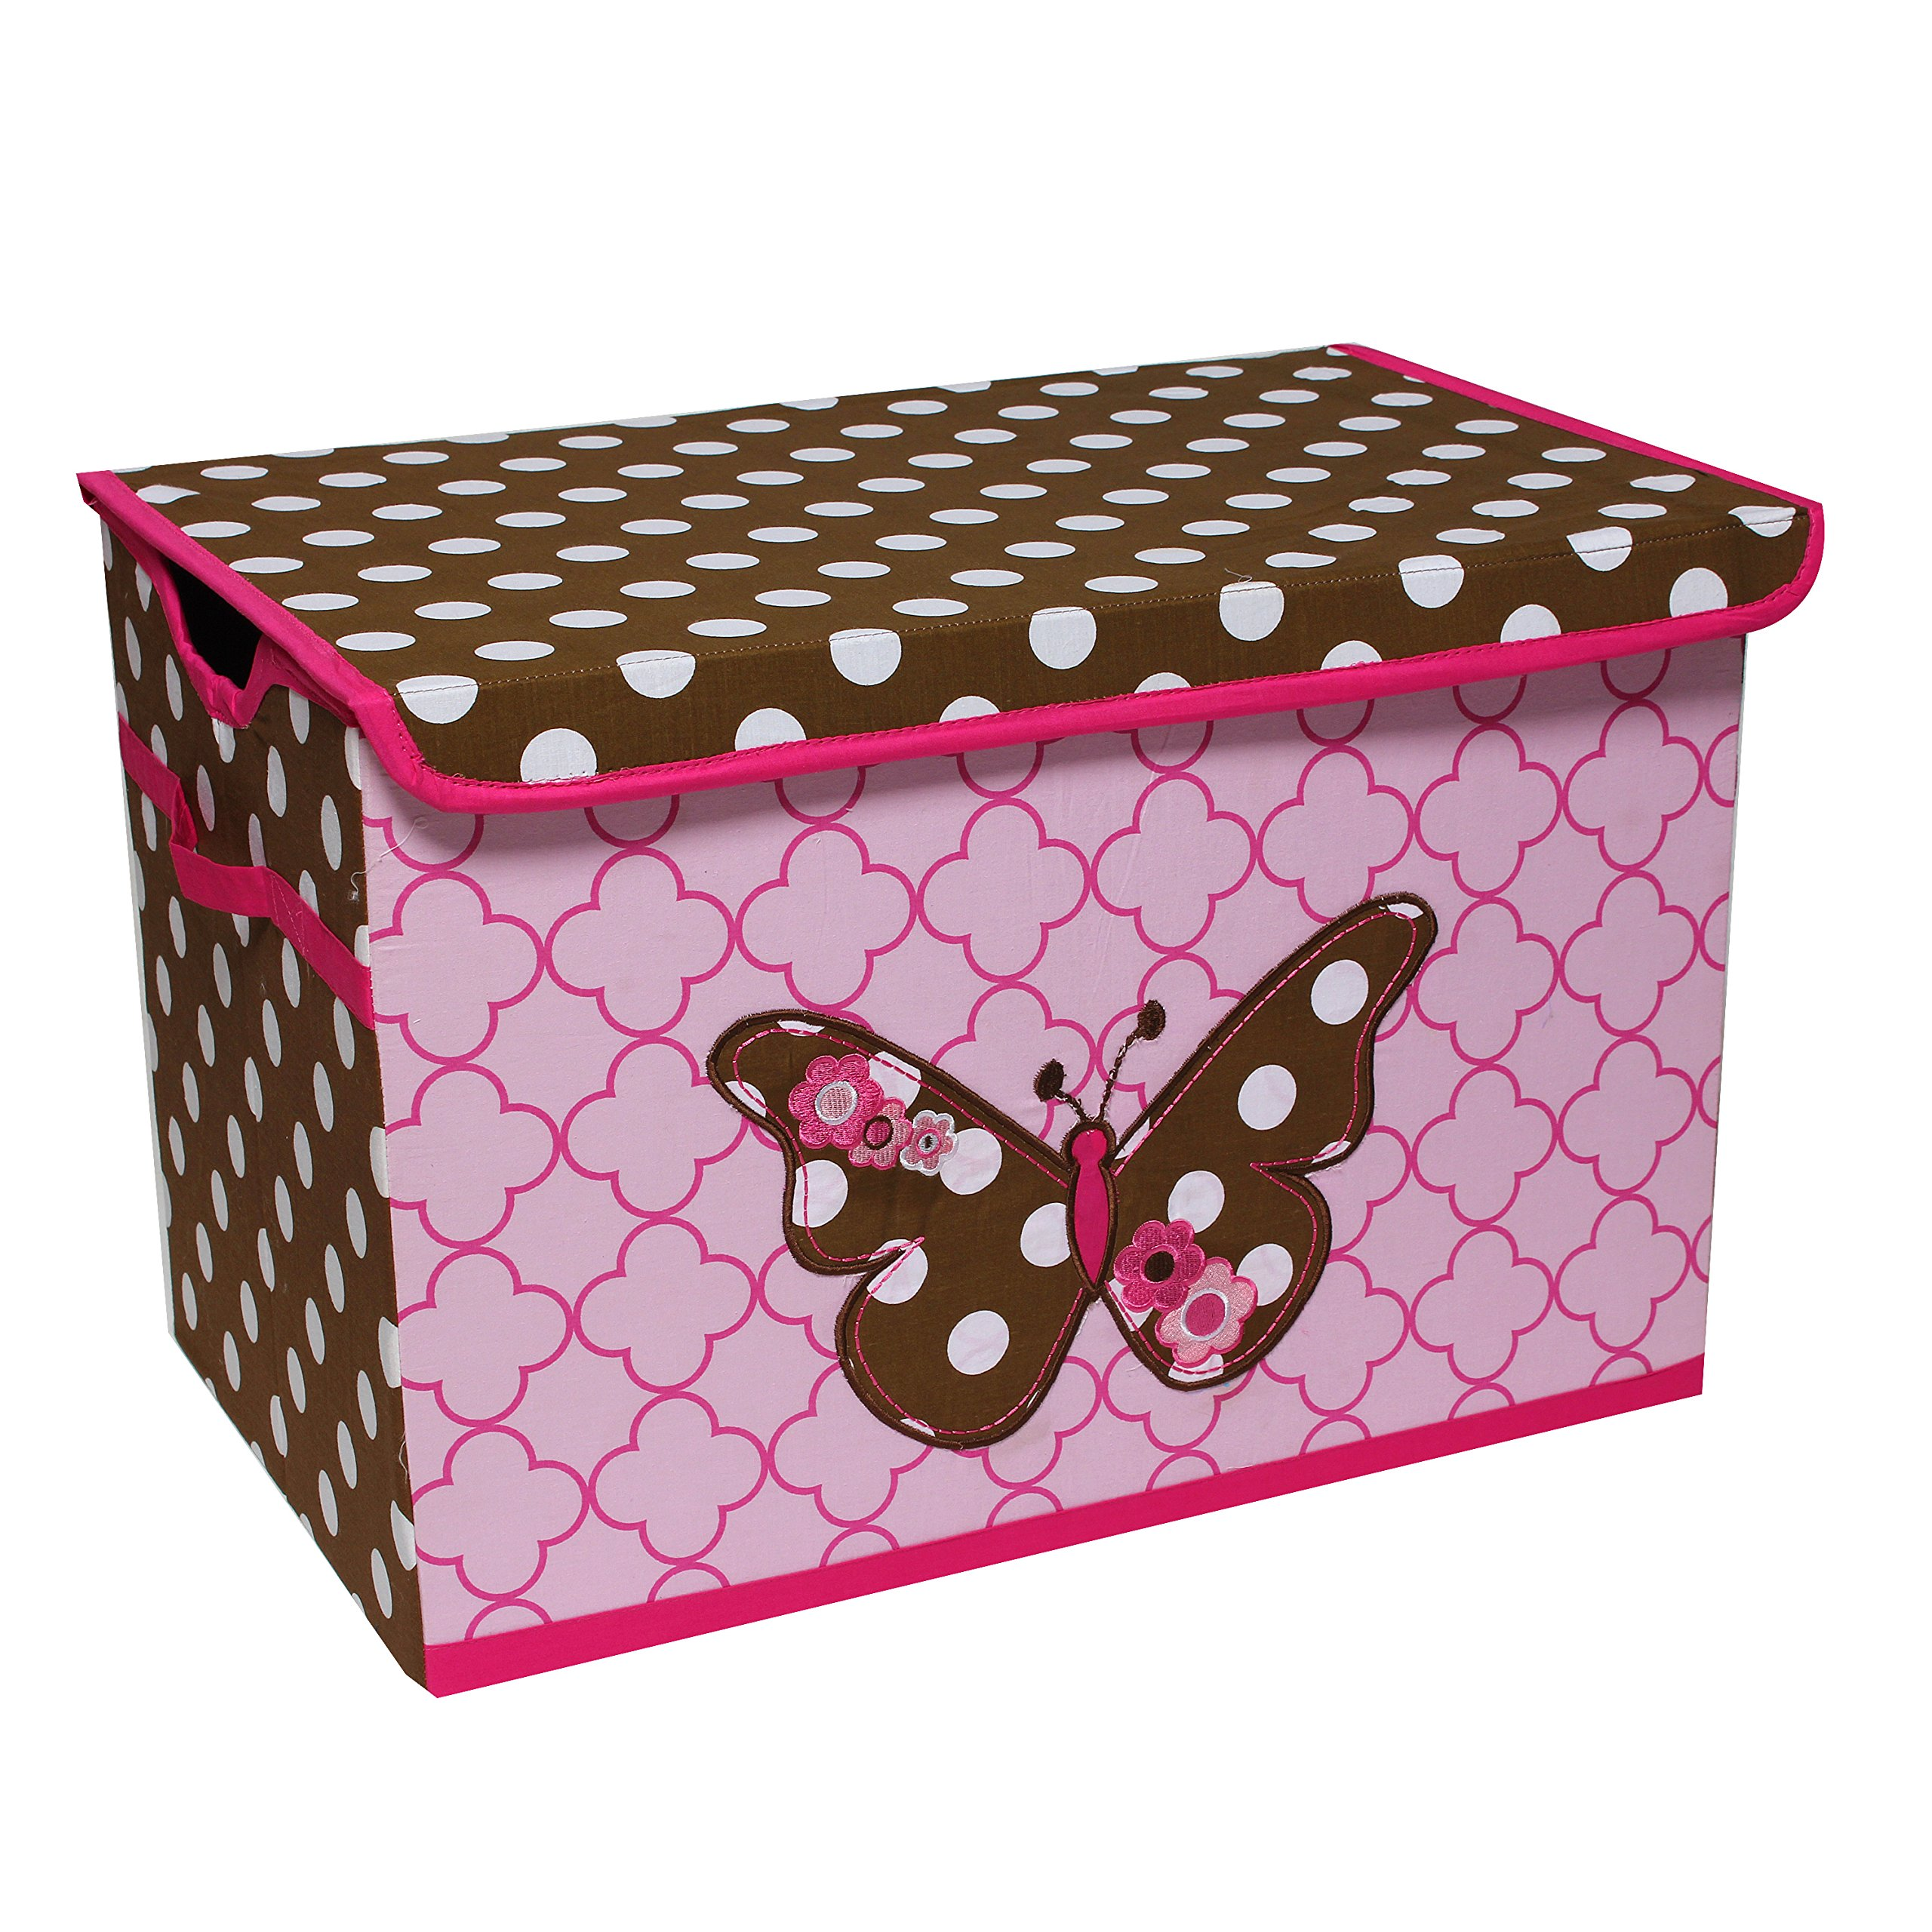 Bacati Butterflies Storage Toy Chest, Pink/Chocolate